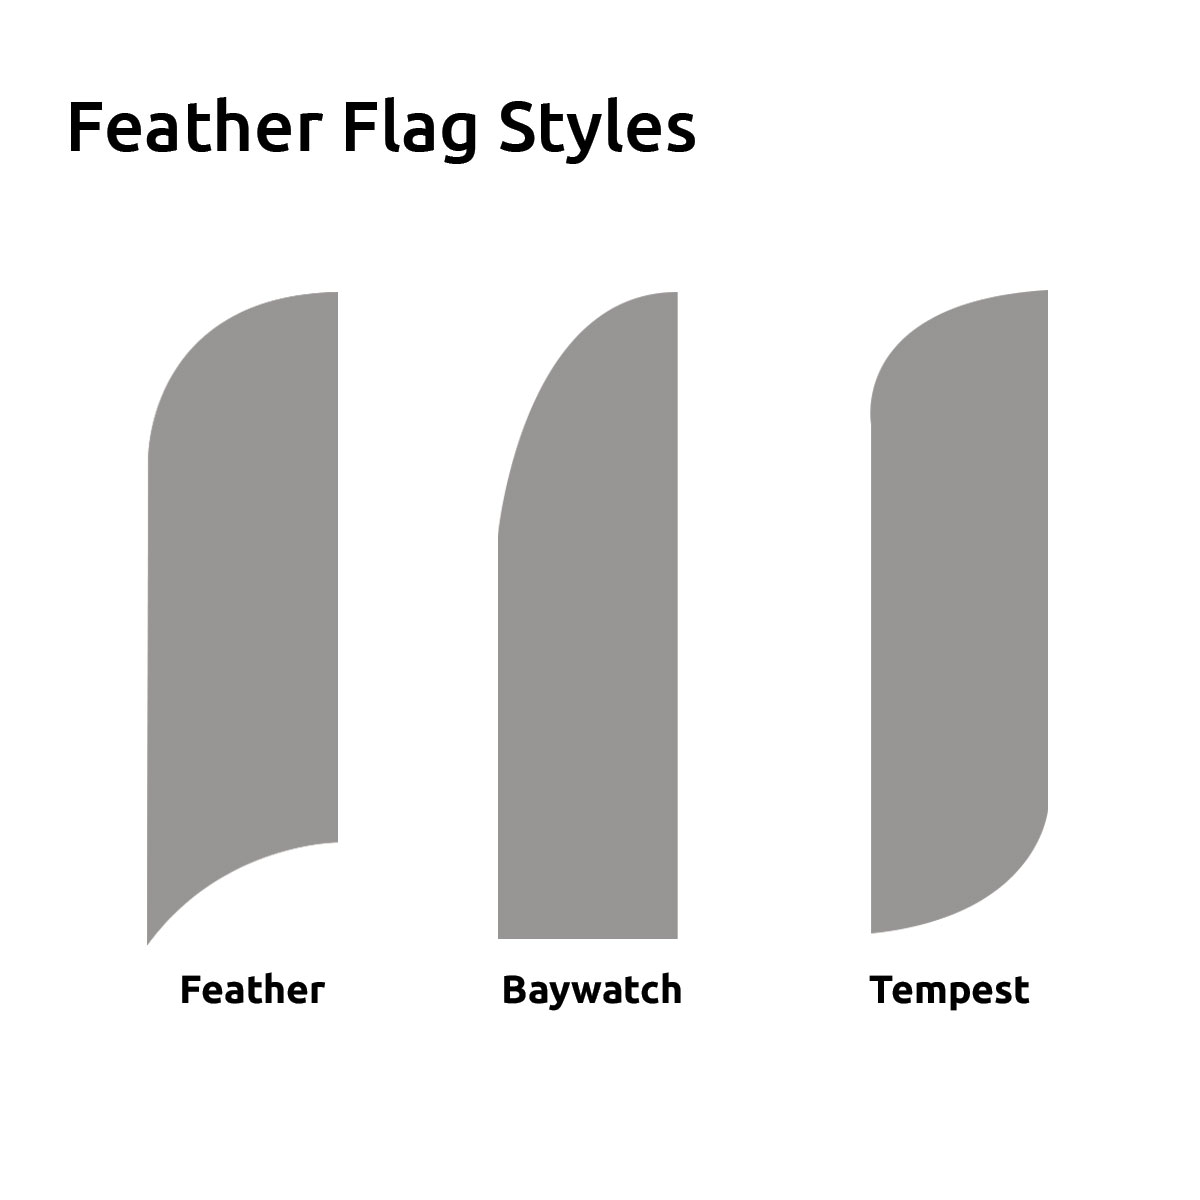 feather flag template Budget Feather Flags | Discount Feather Flags | Flying Banners